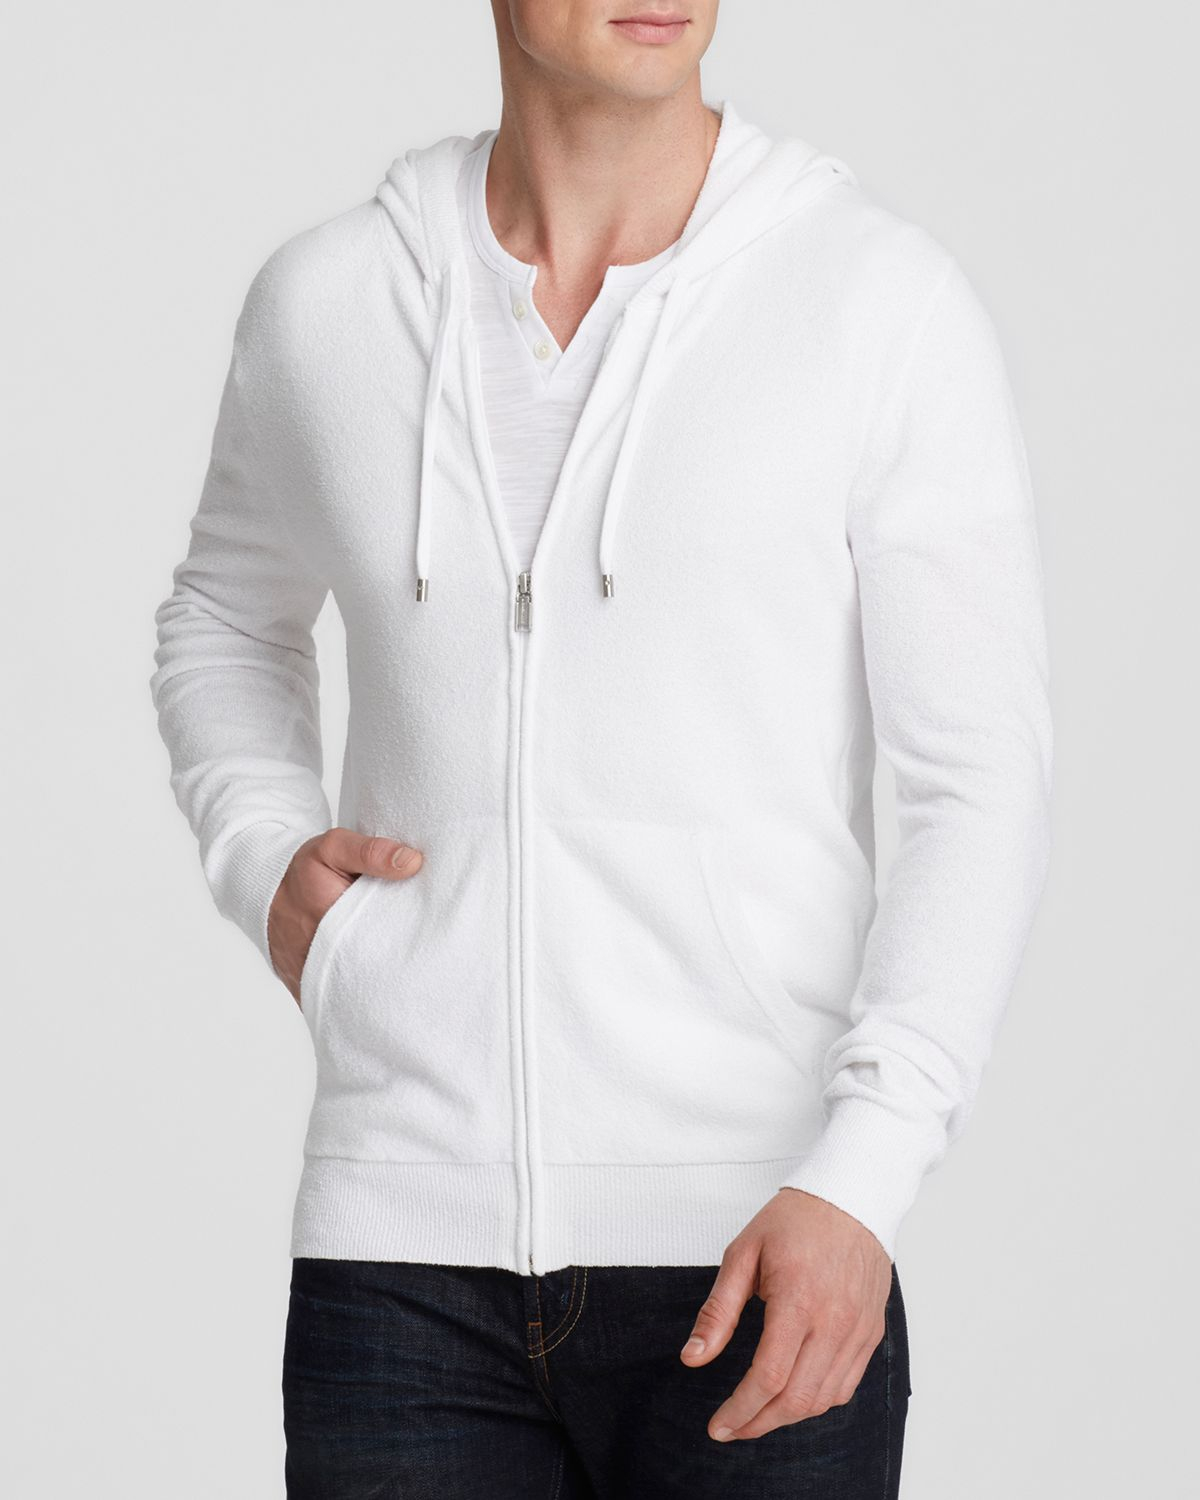 Results for active hoodies shirts + tops - shop all liveblog.ga Rewards Points · % Off Boots · 60% Off Outerwear · Free Shipping to StoresTypes: Dresses, Tops, Jeans, Activewear, Sweaters, Jackets, Maternity.